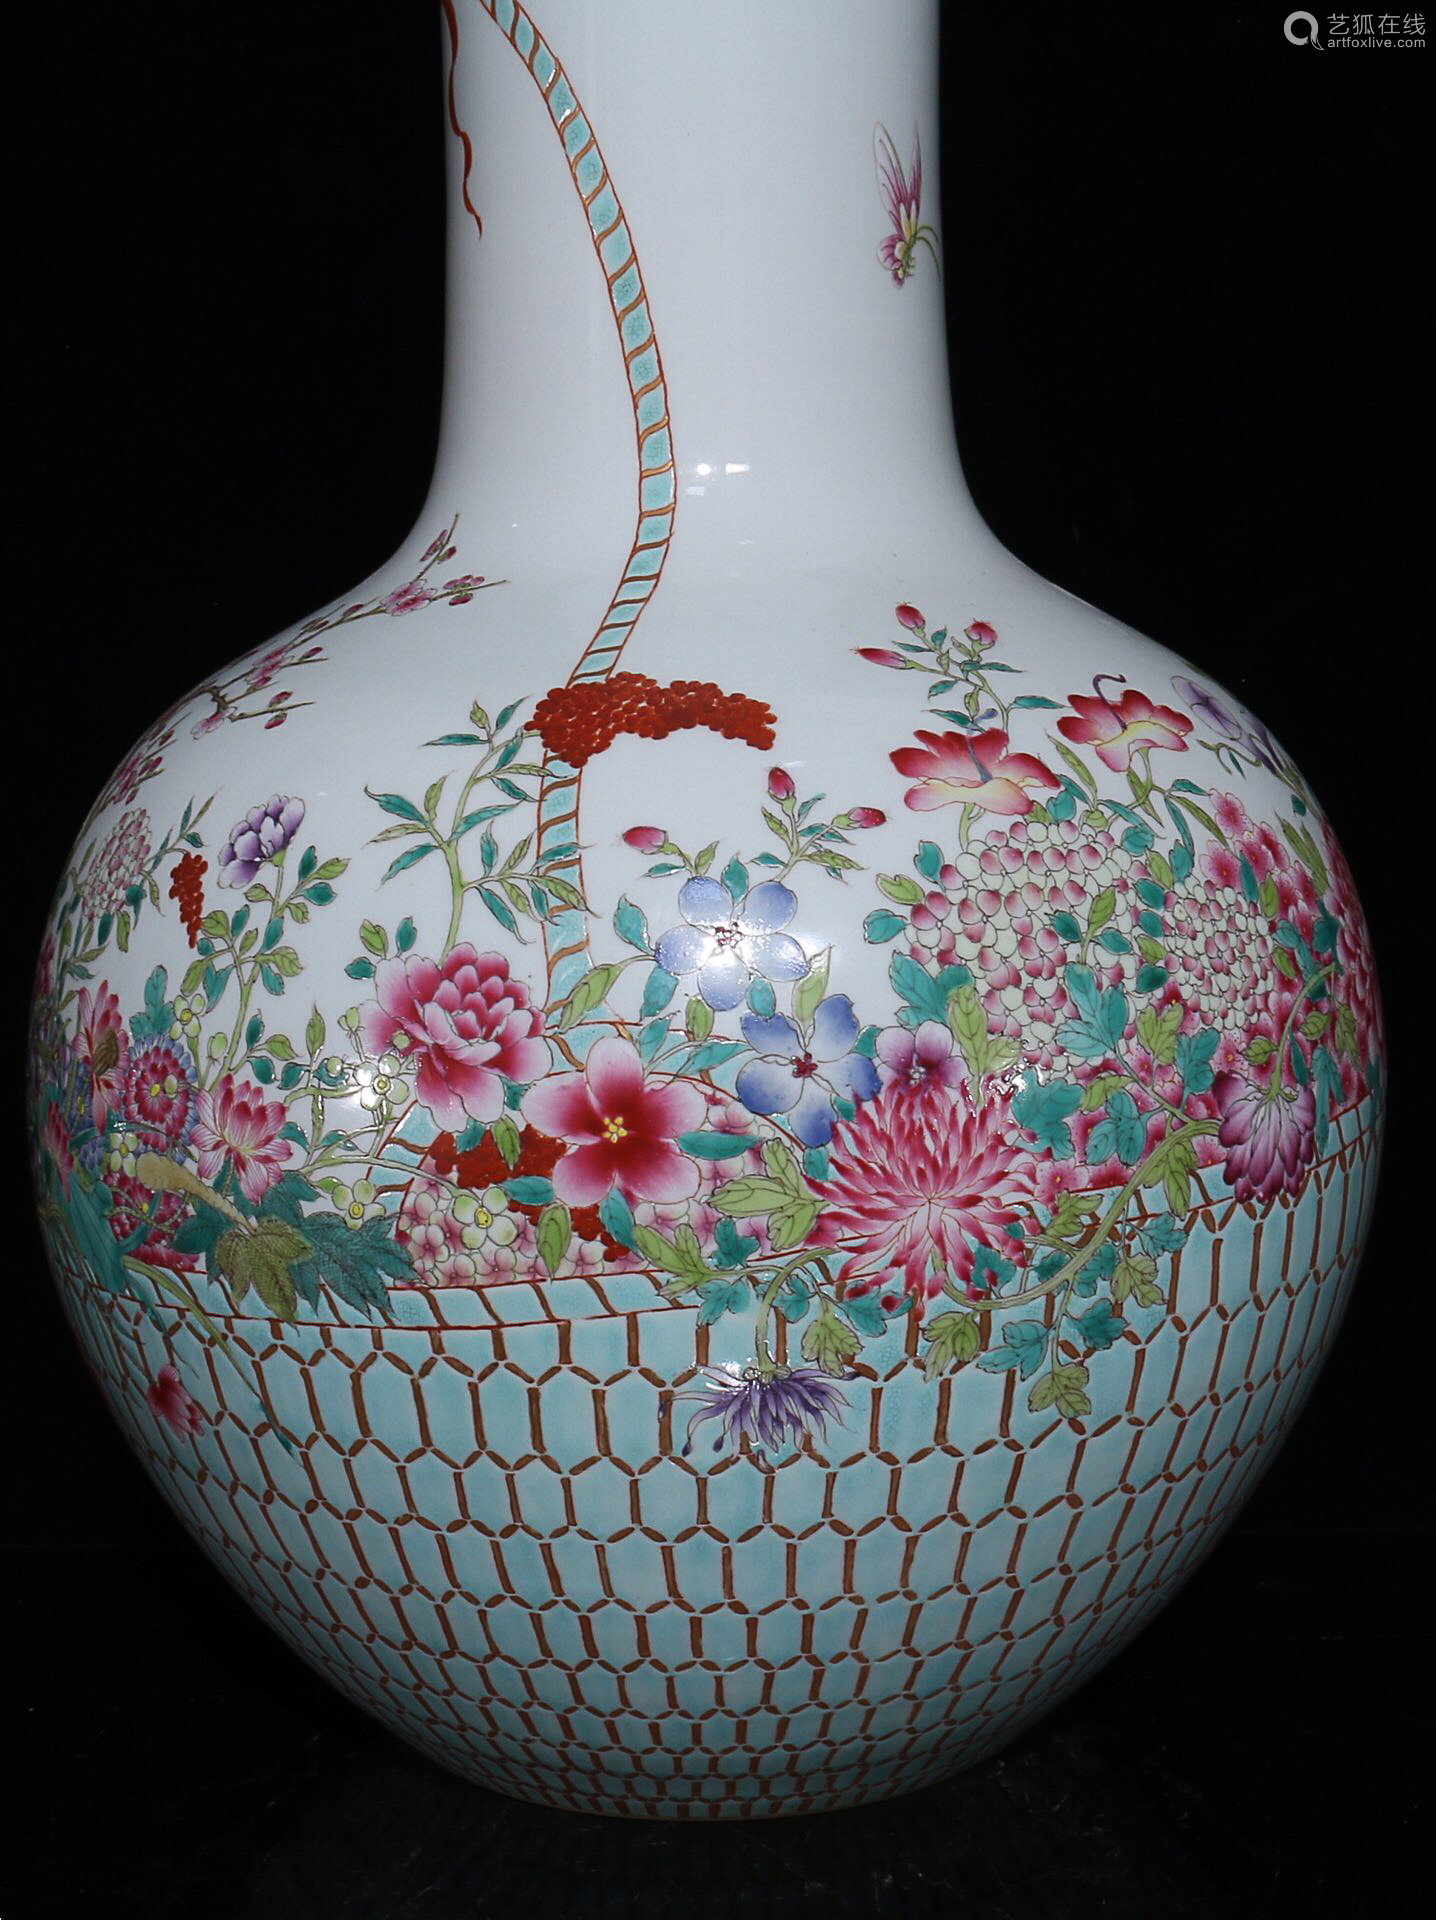 17-19TH CENTURY, A FLOWER BASKET PATTERN  GLOBULAR VASE, QING DYNASTY